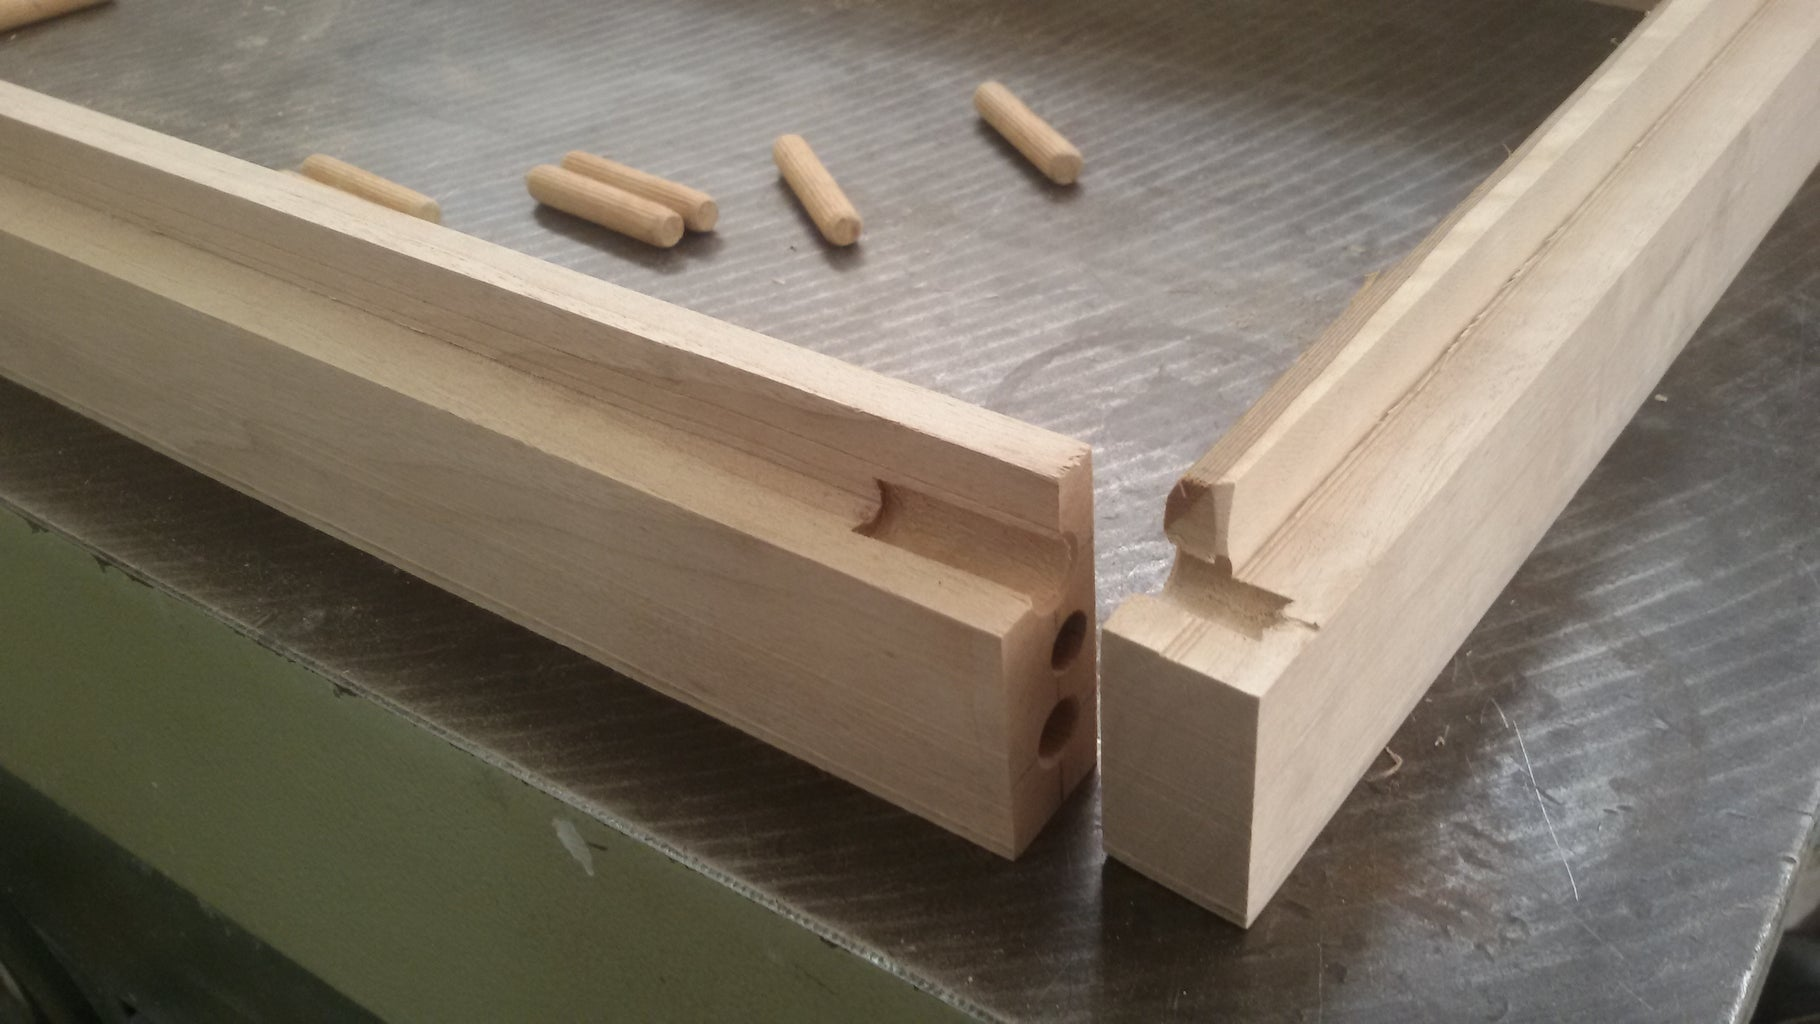 Making Paths for the Body of Cajon